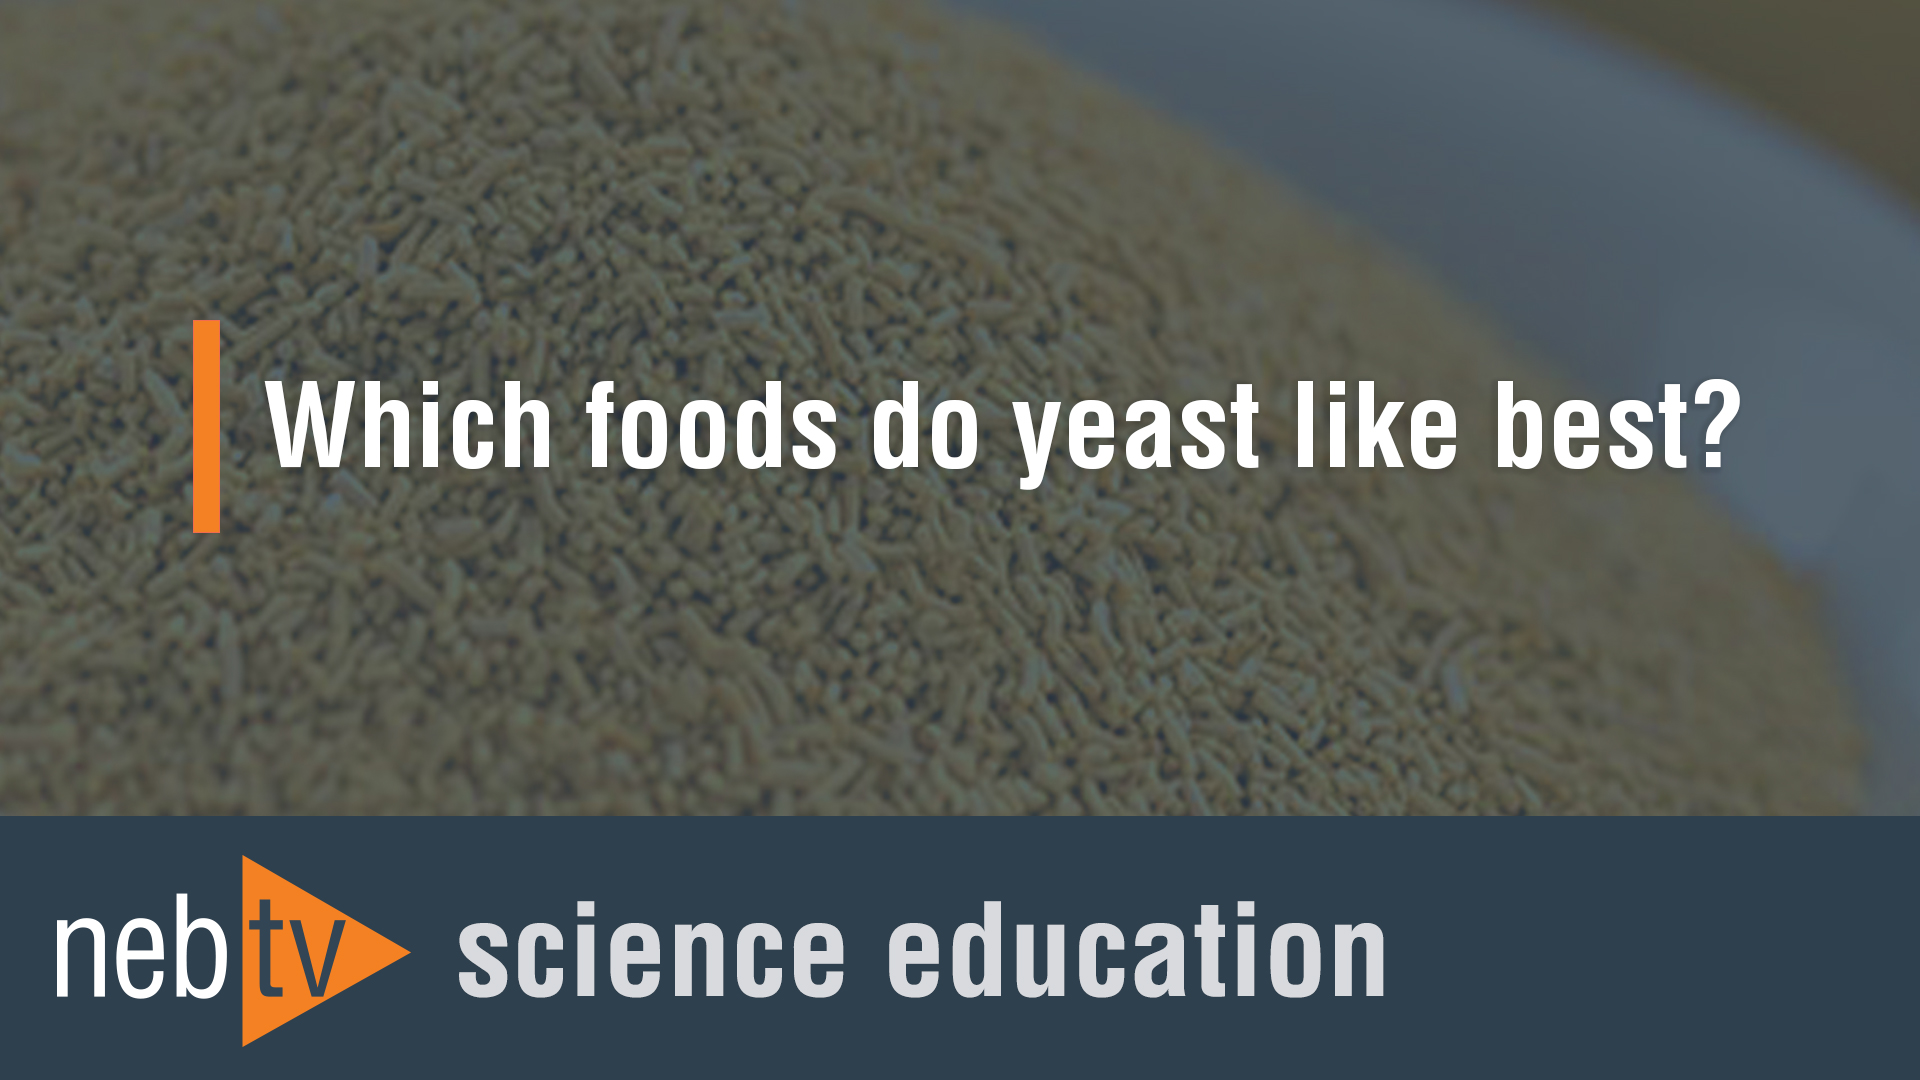 NEBTV_SciEdu_Yeast_1920